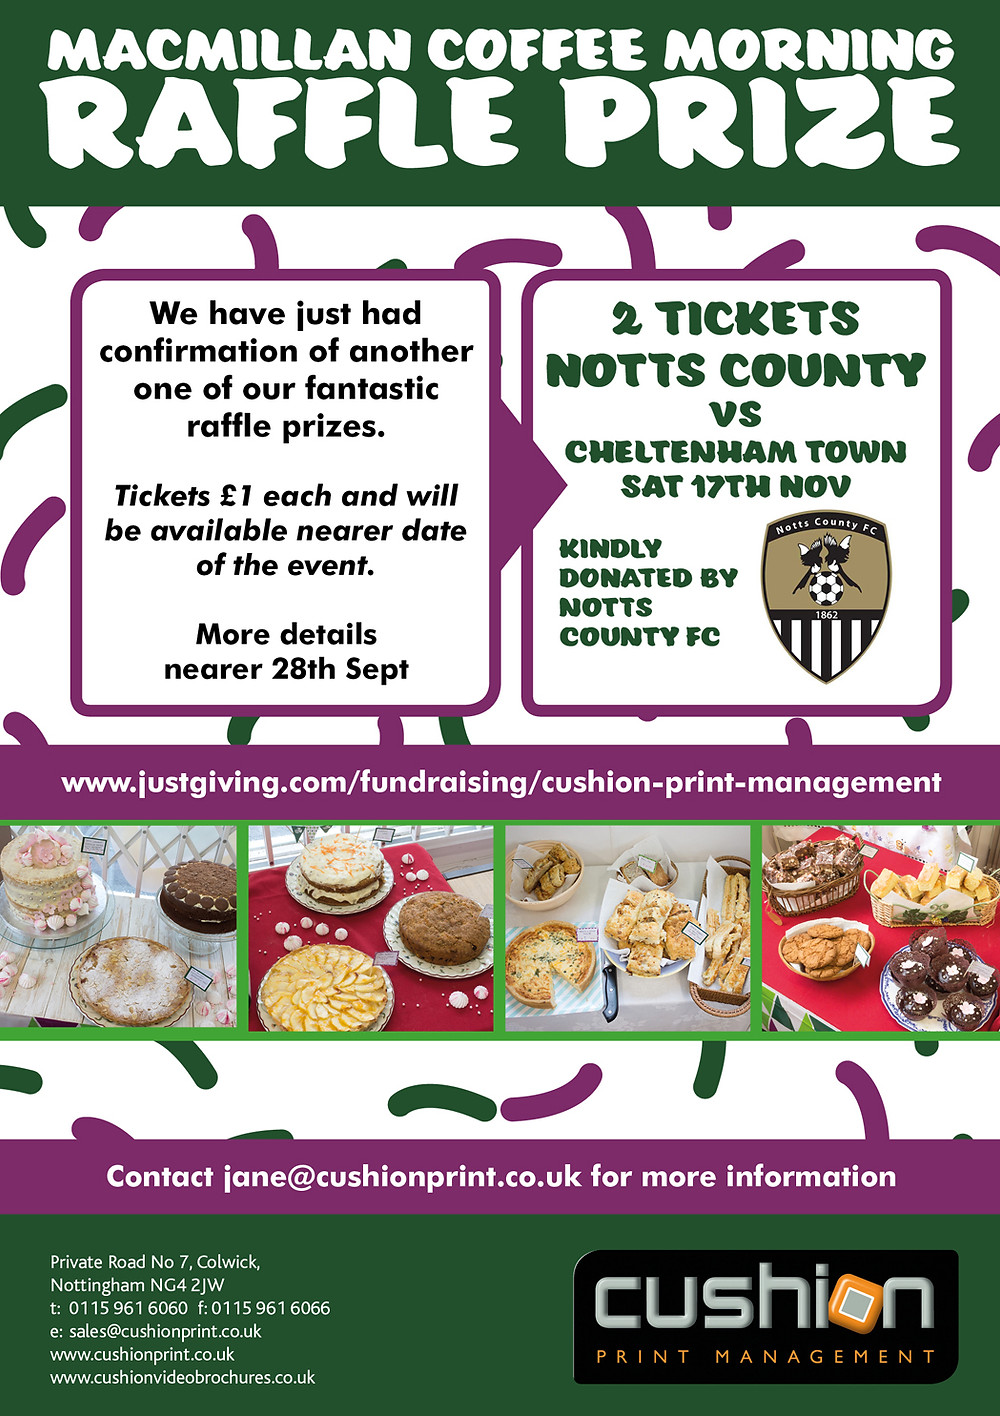 Win 2 x Football Tickets Kindly Donated By Notts County FC For Our Macmillan Cake Sale Event On 28th Sept